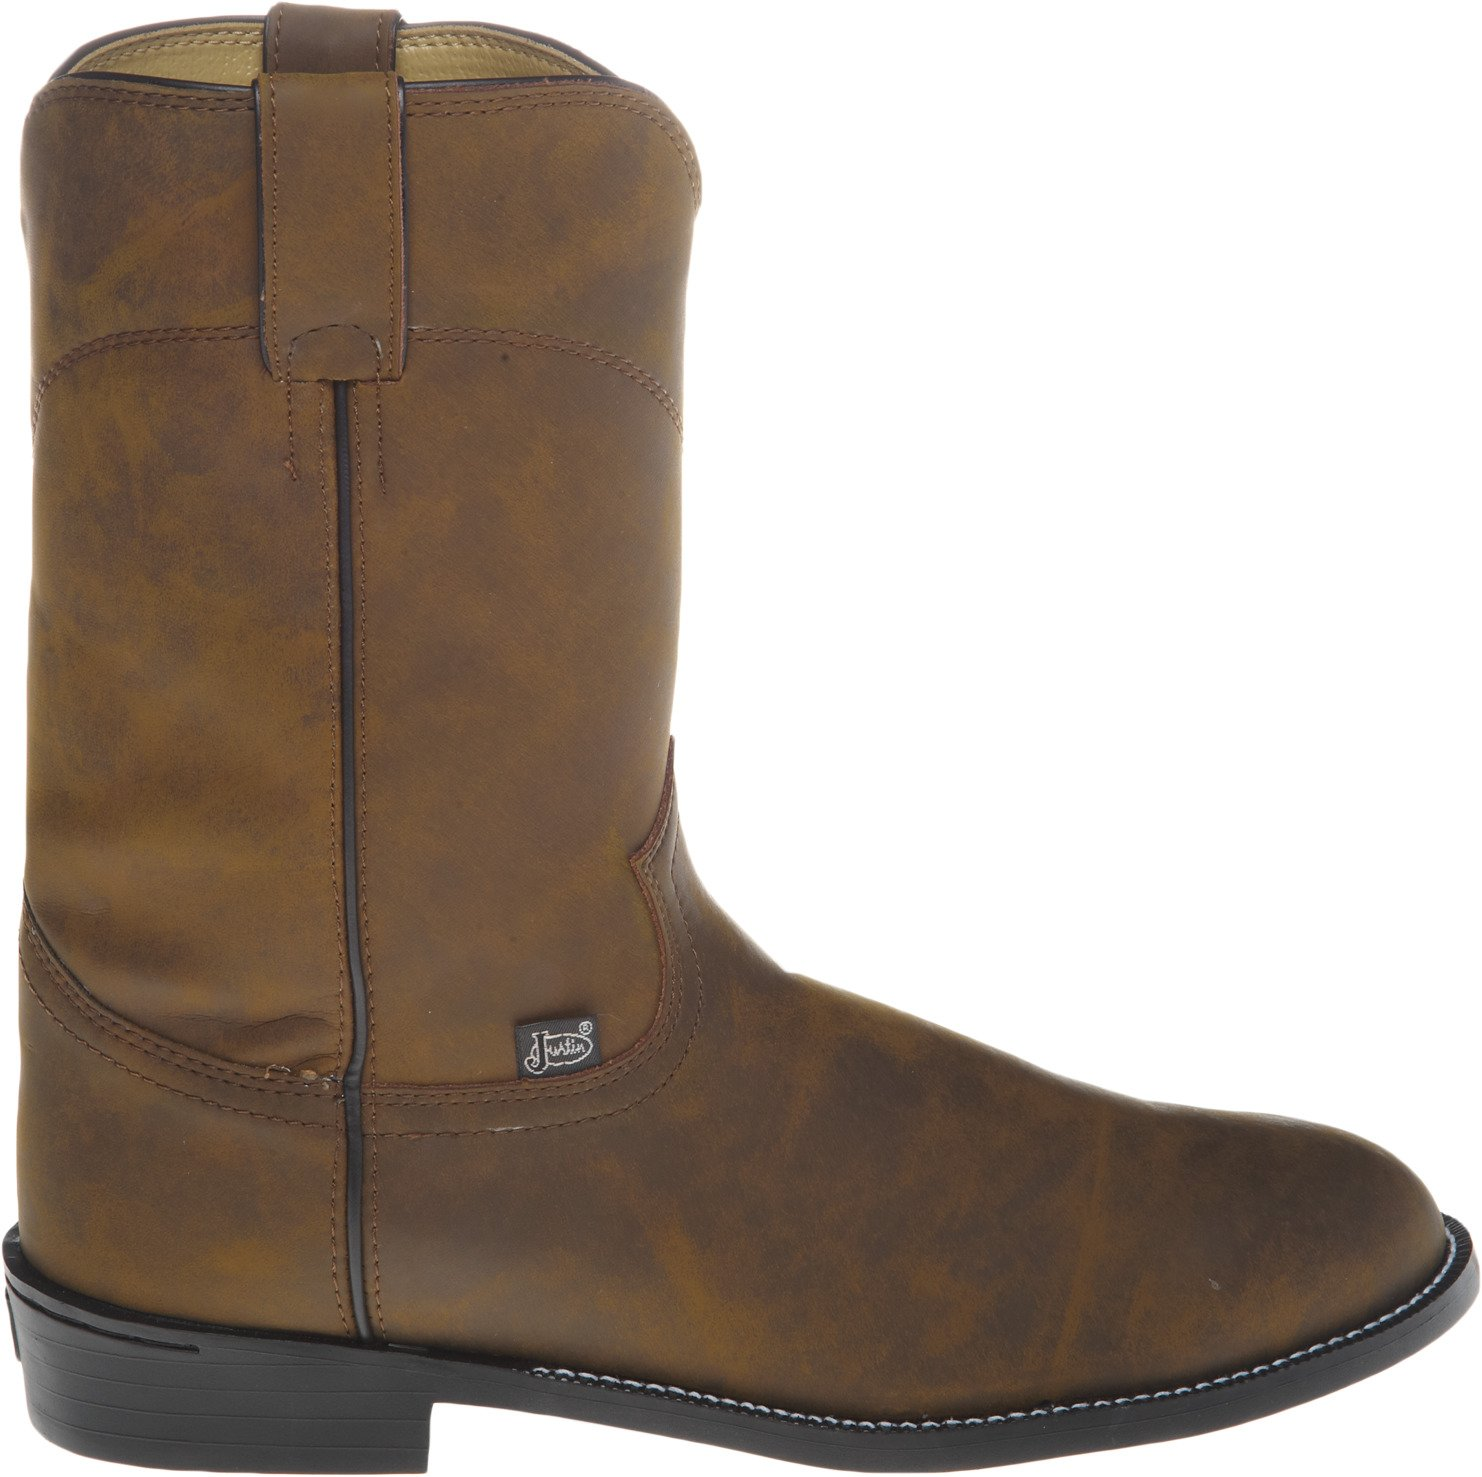 a6ba2ded5baf Display product reviews for Justin Men s Wellington Boots